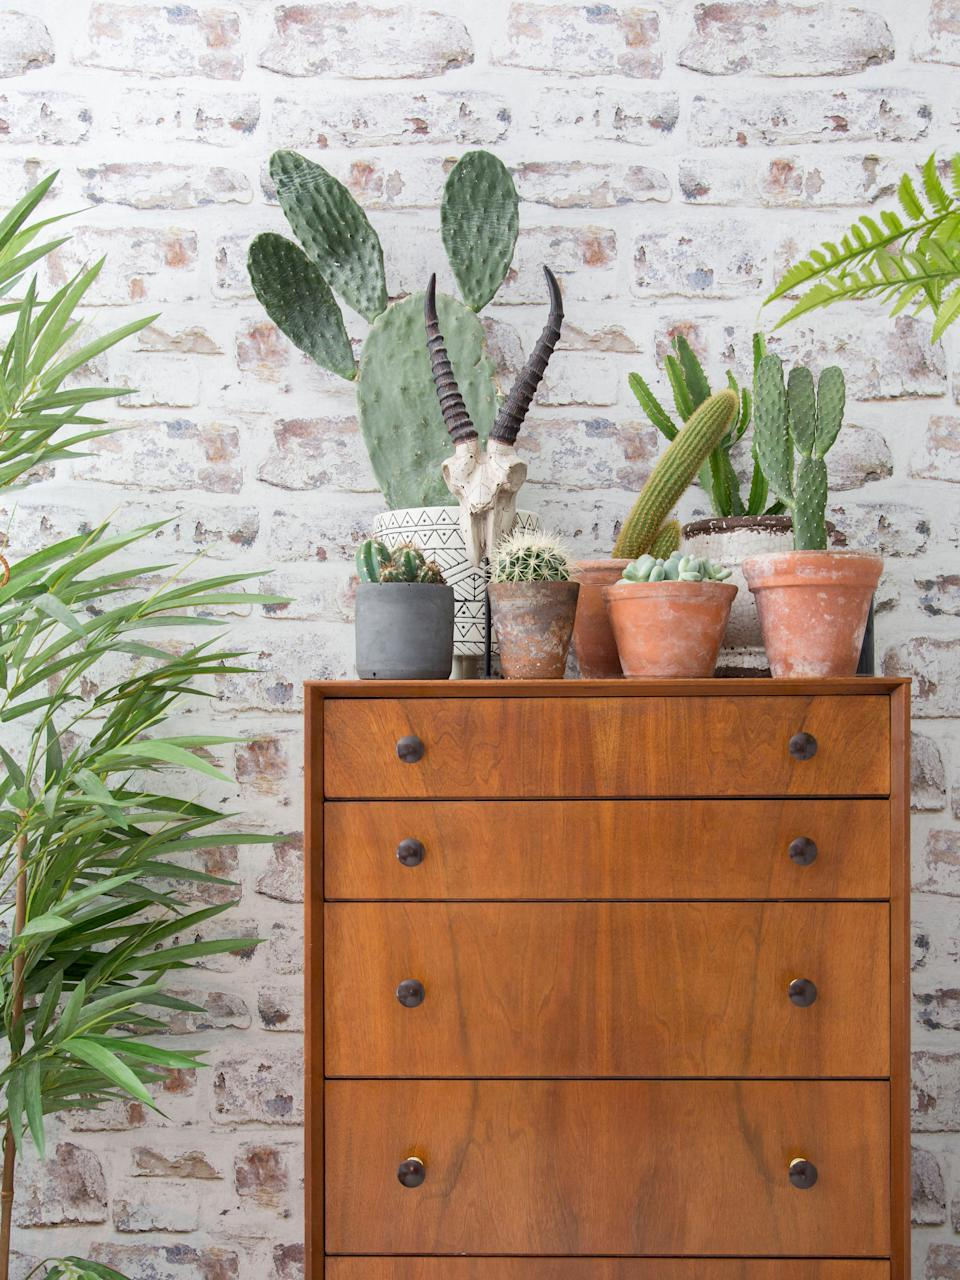 Garden trends succulents on chest of drawers